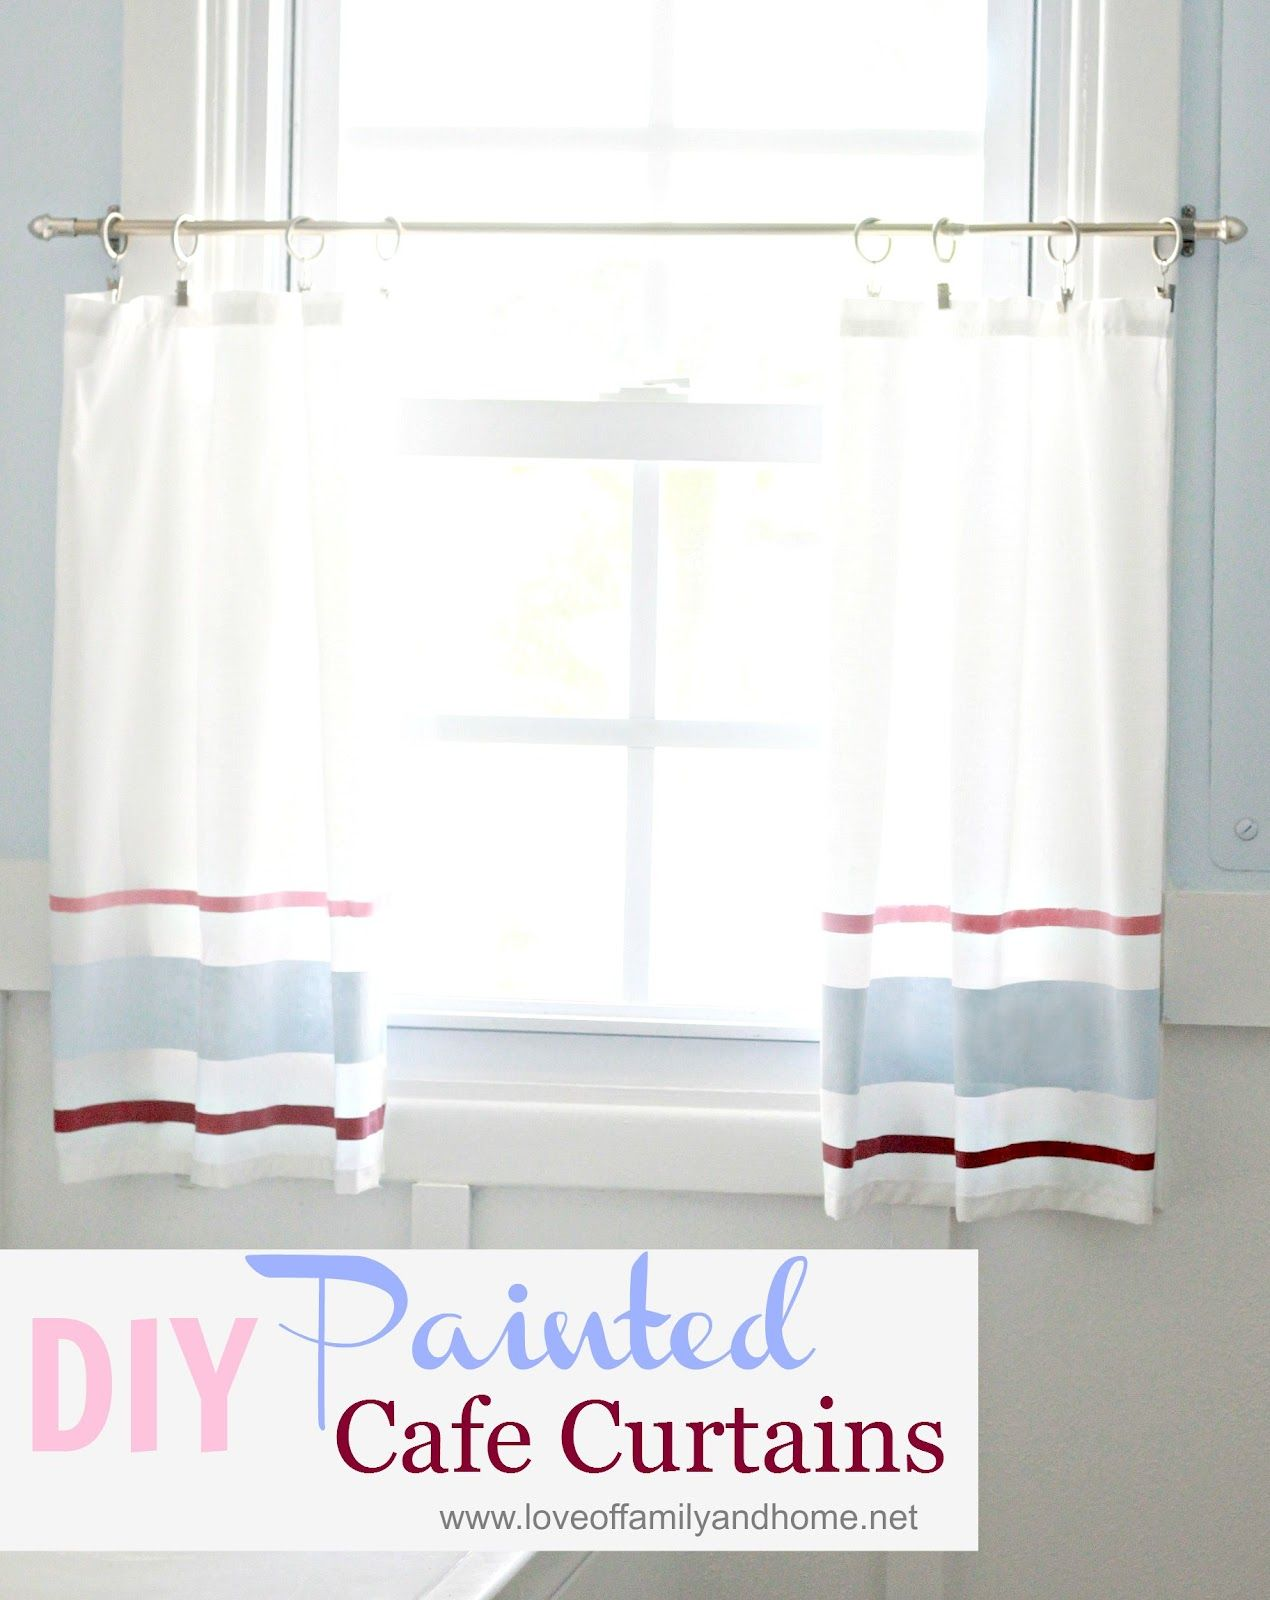 Diy painted cafe curtain tutorial sewing pinterest curtain